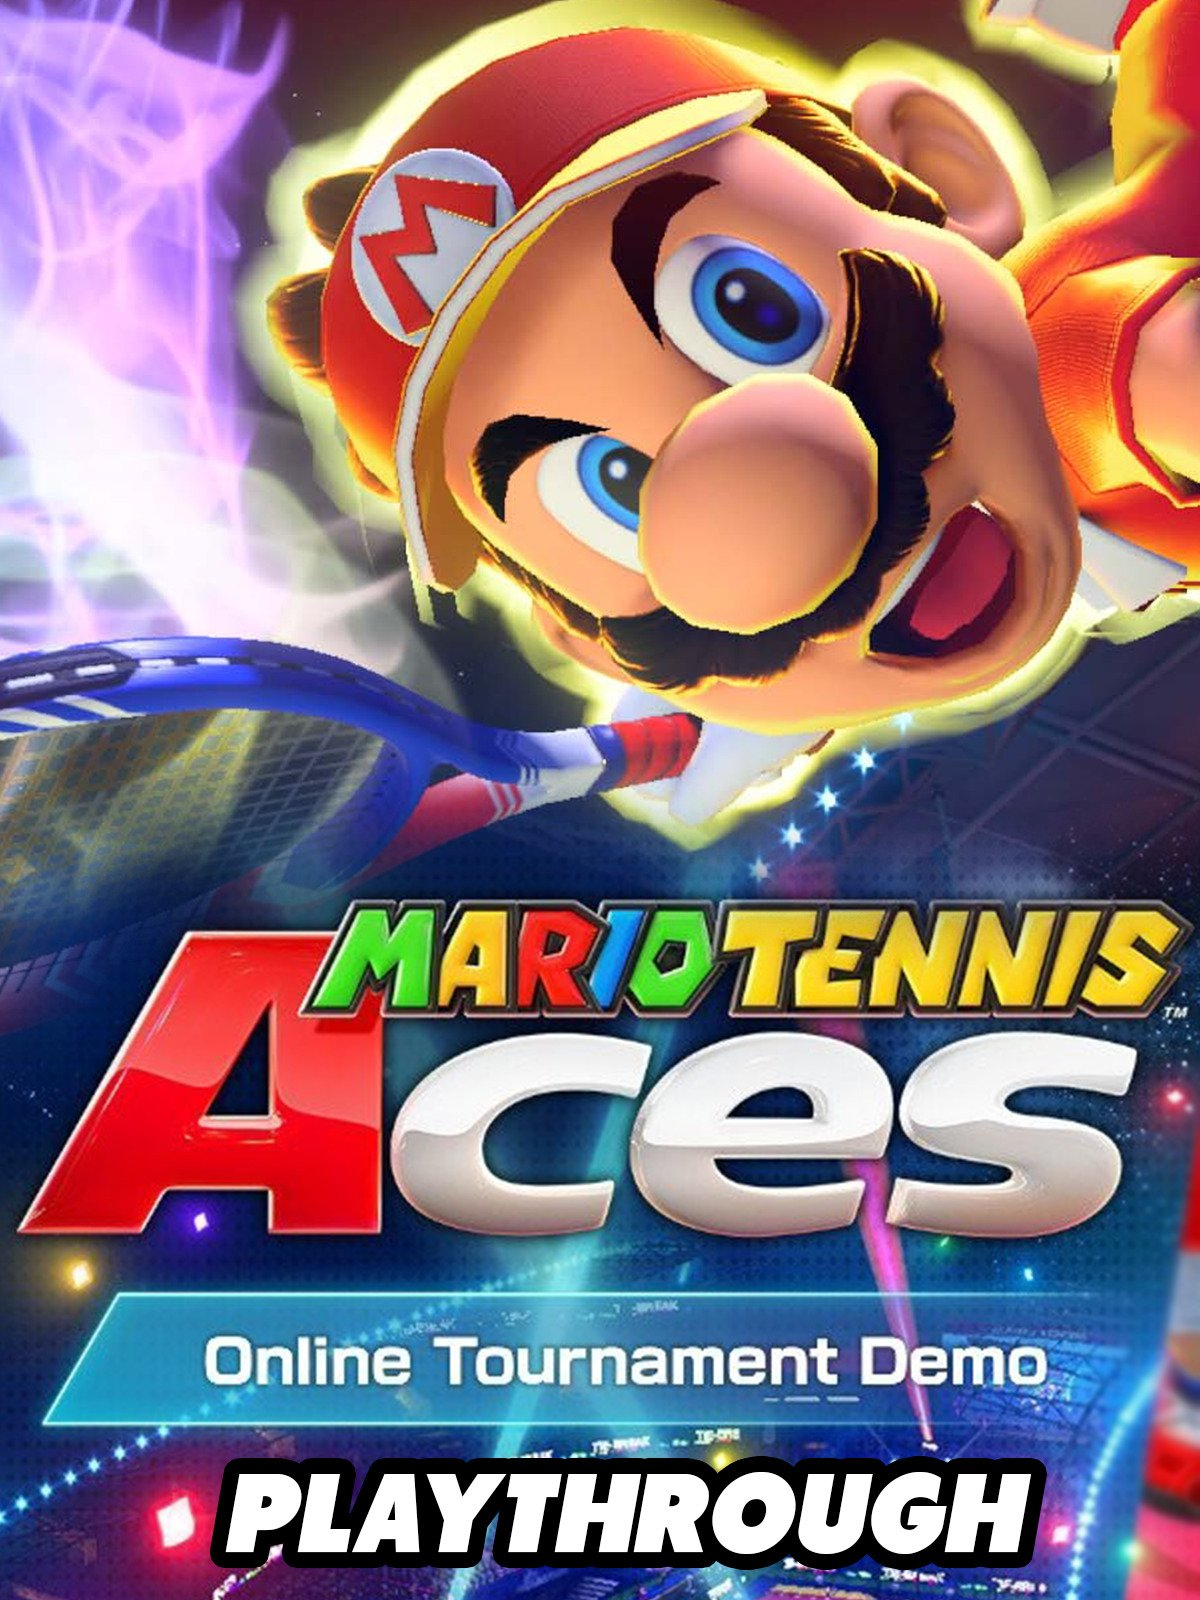 Clip: Mario Tennis Aces Demo Online Tournament Demo Gameplay